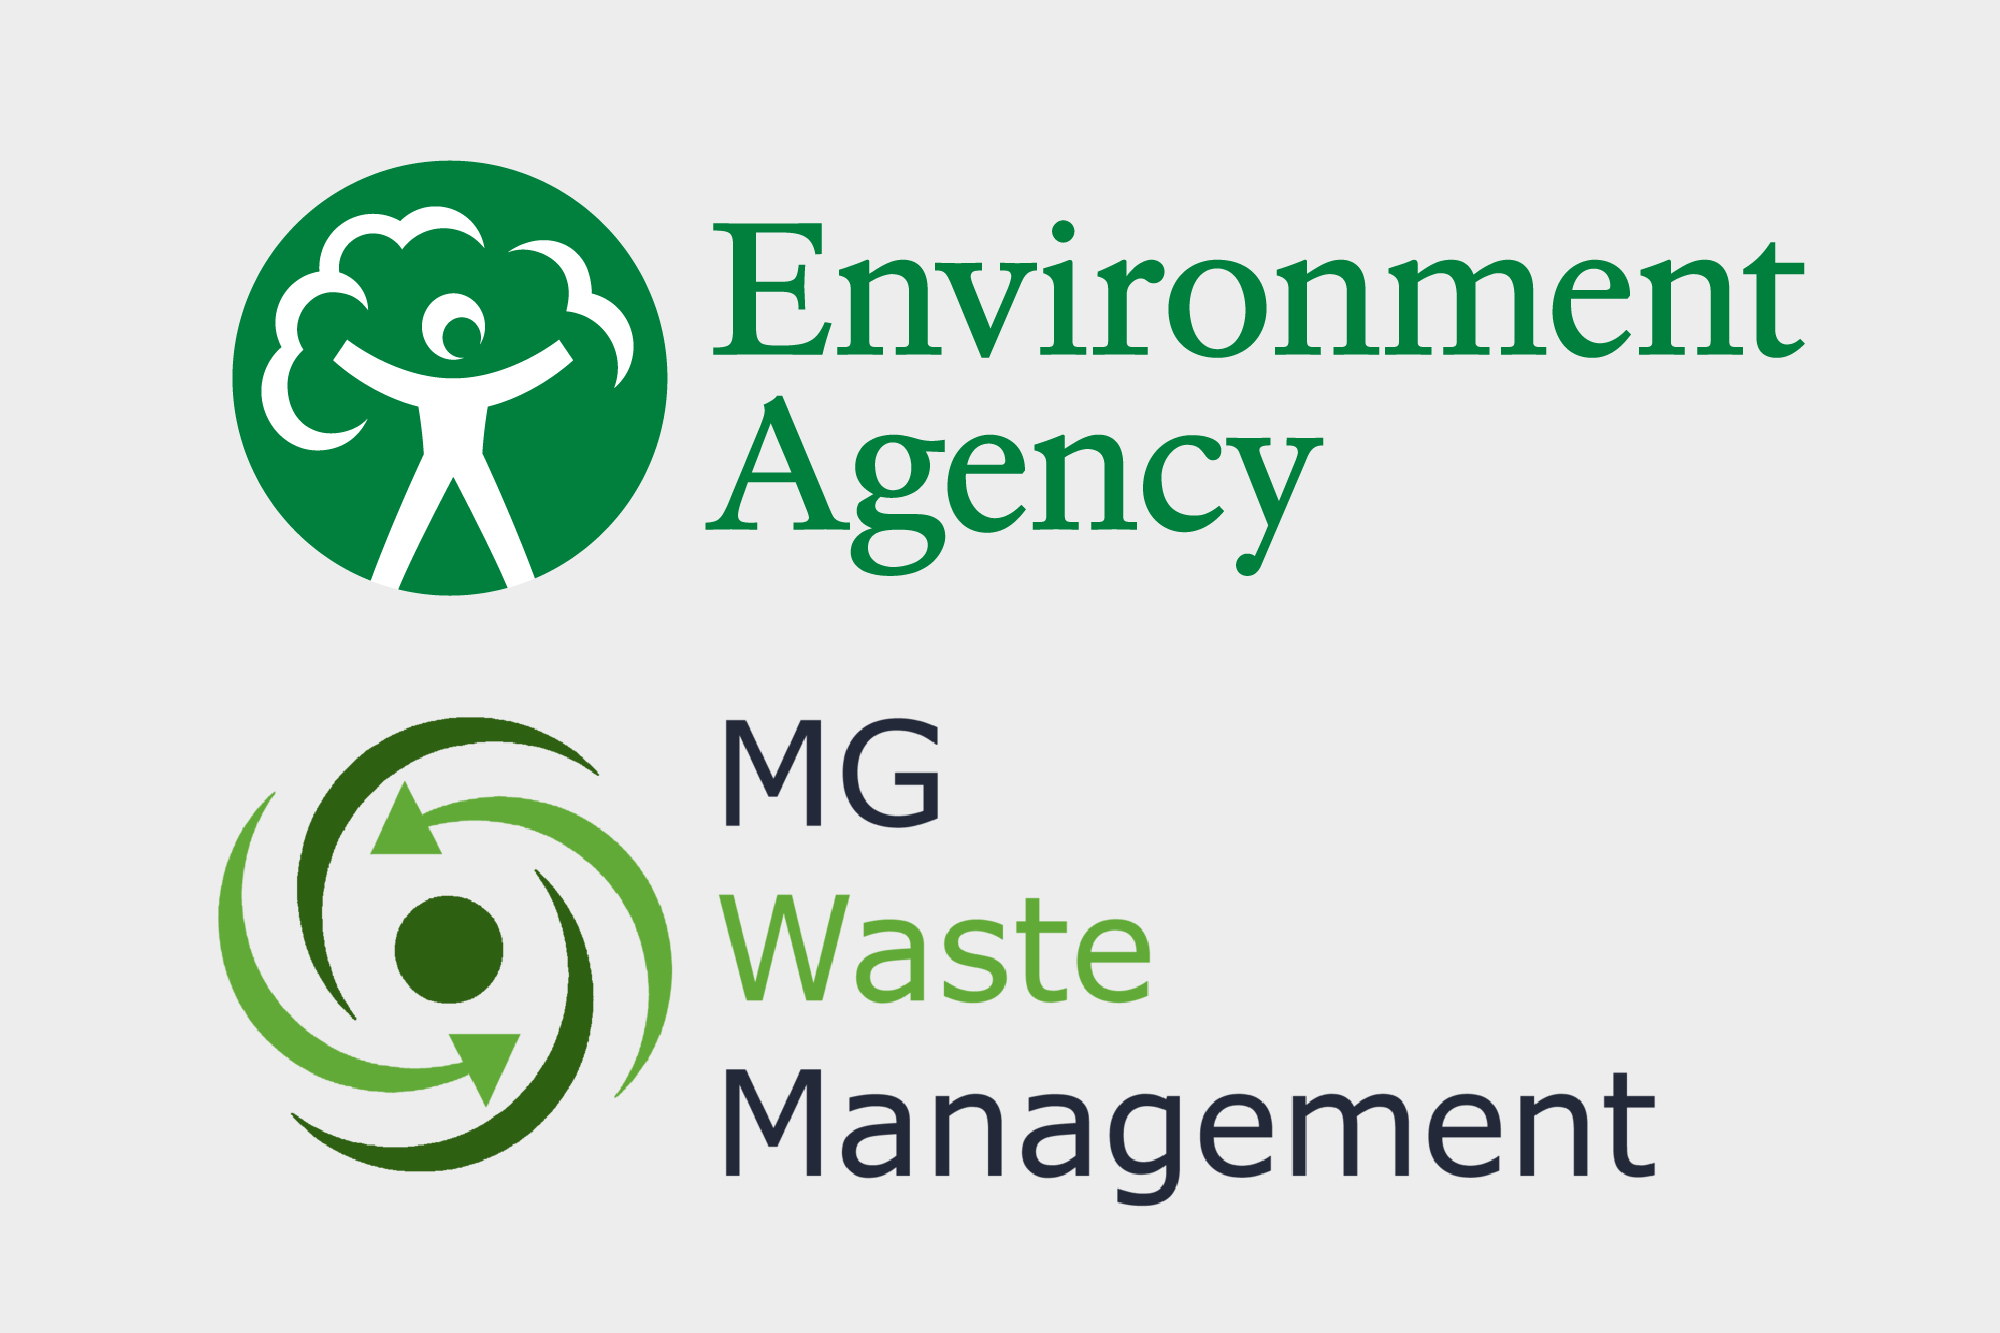 R&W are in partnership with MG waste management to protect our planet